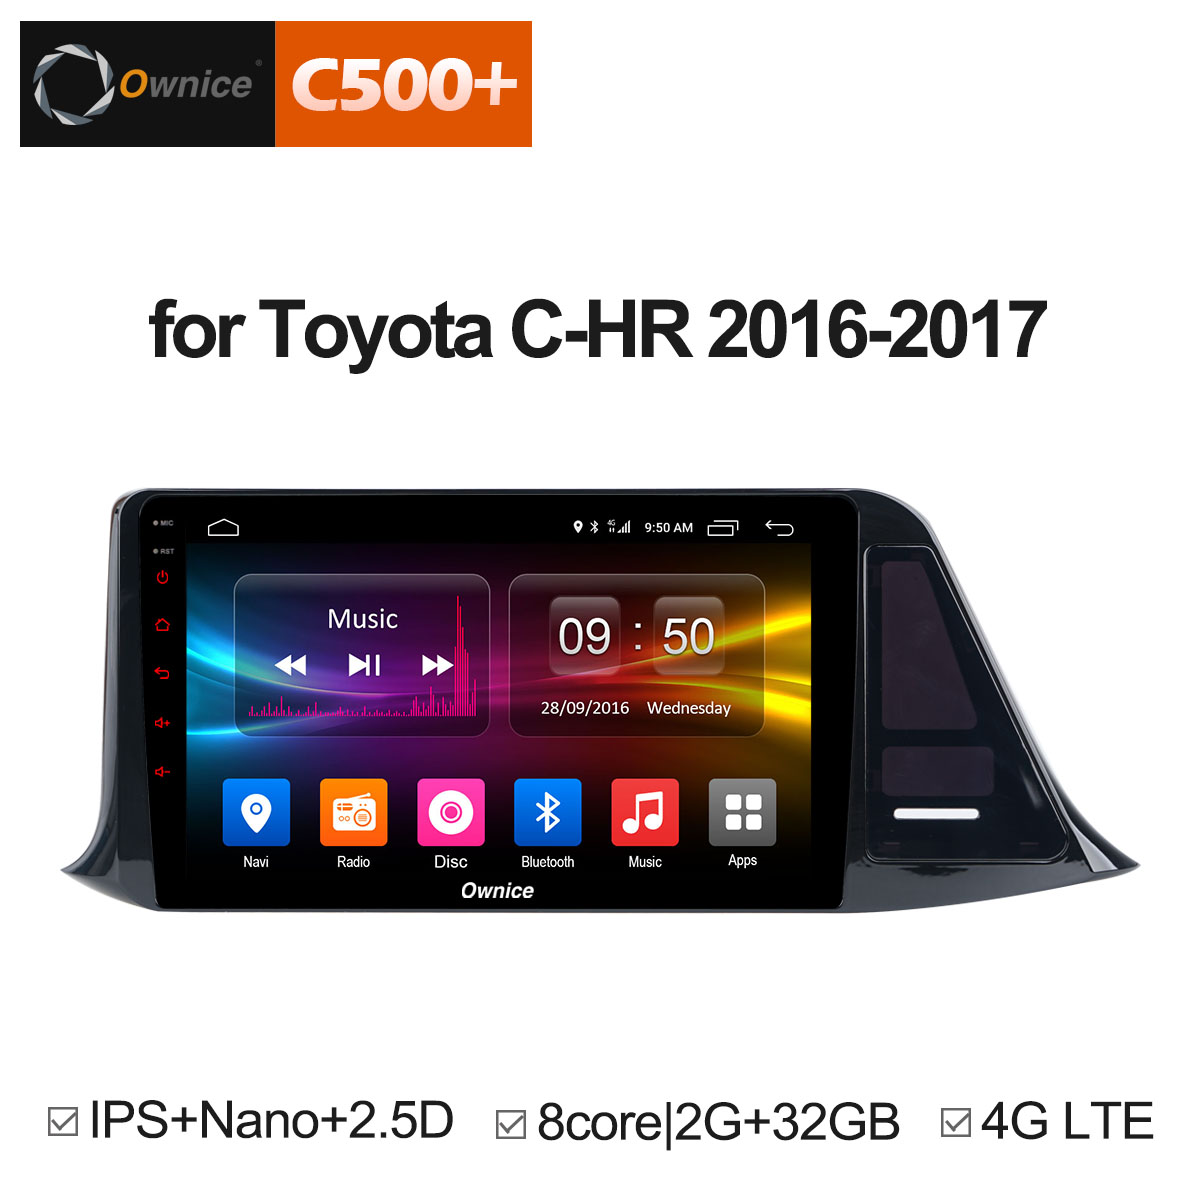 Ownice C500+ G10 Car dvd for Toyota C-HR C HR CHR 2016 2017 Car Android 8.1 Radio Audio GPS Player Navi Stereo Multimedia 4G LTE футболка классическая printio adventure time x doctor who